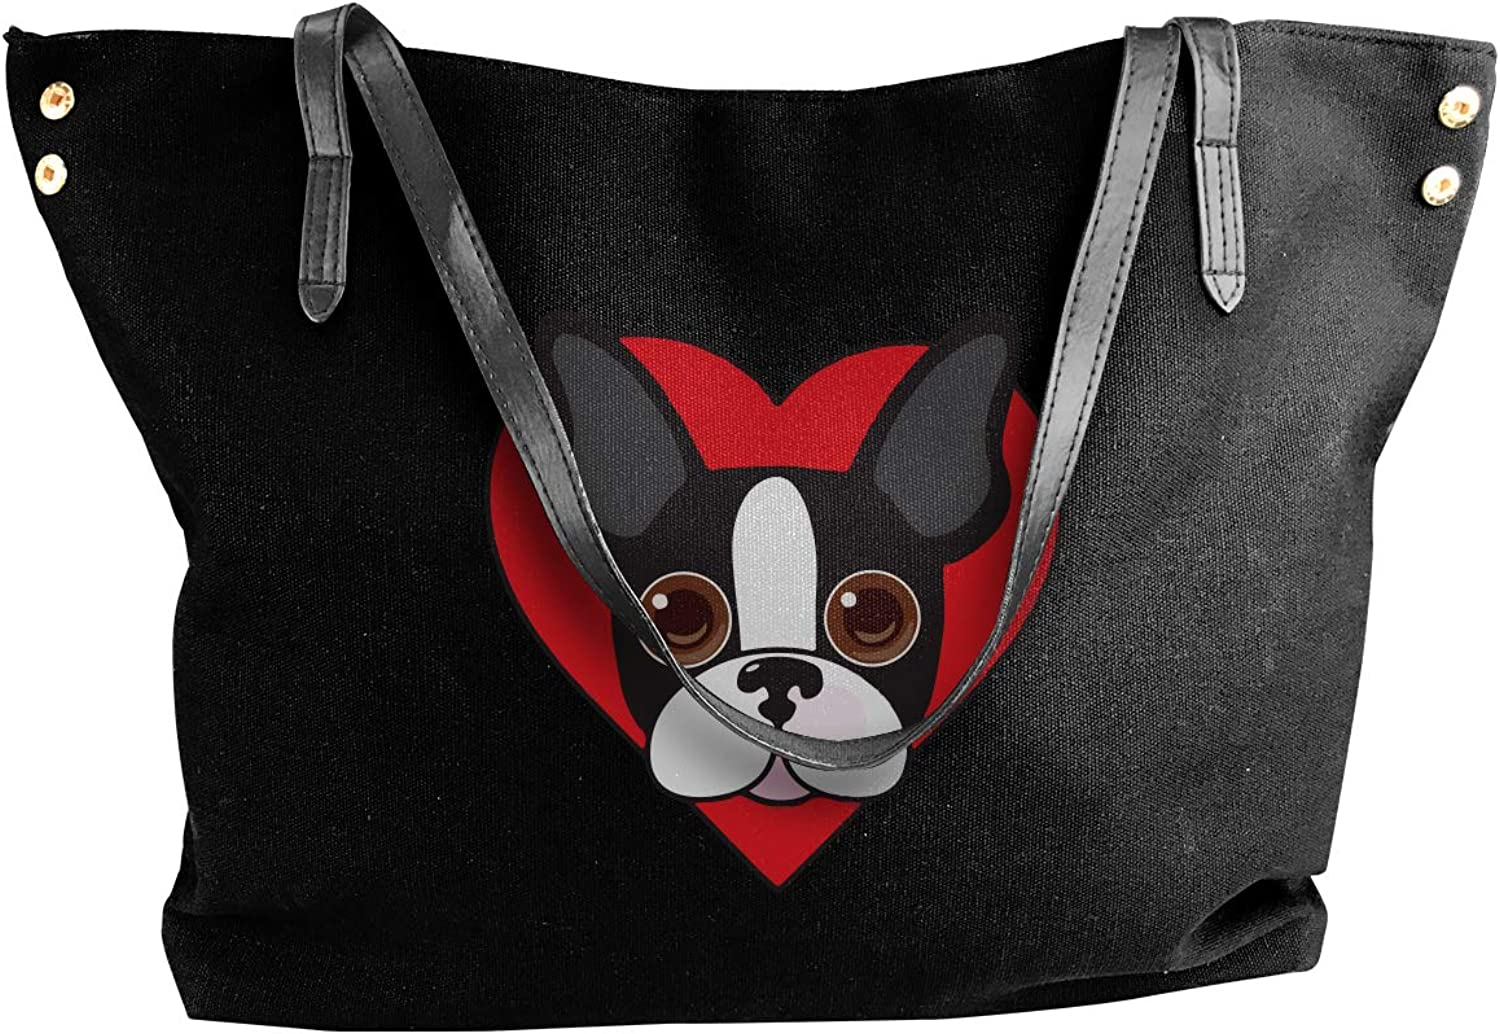 Boston Terrier Face Women'S Recreation Canvas Handbag For Shopping Big Shopping Bag